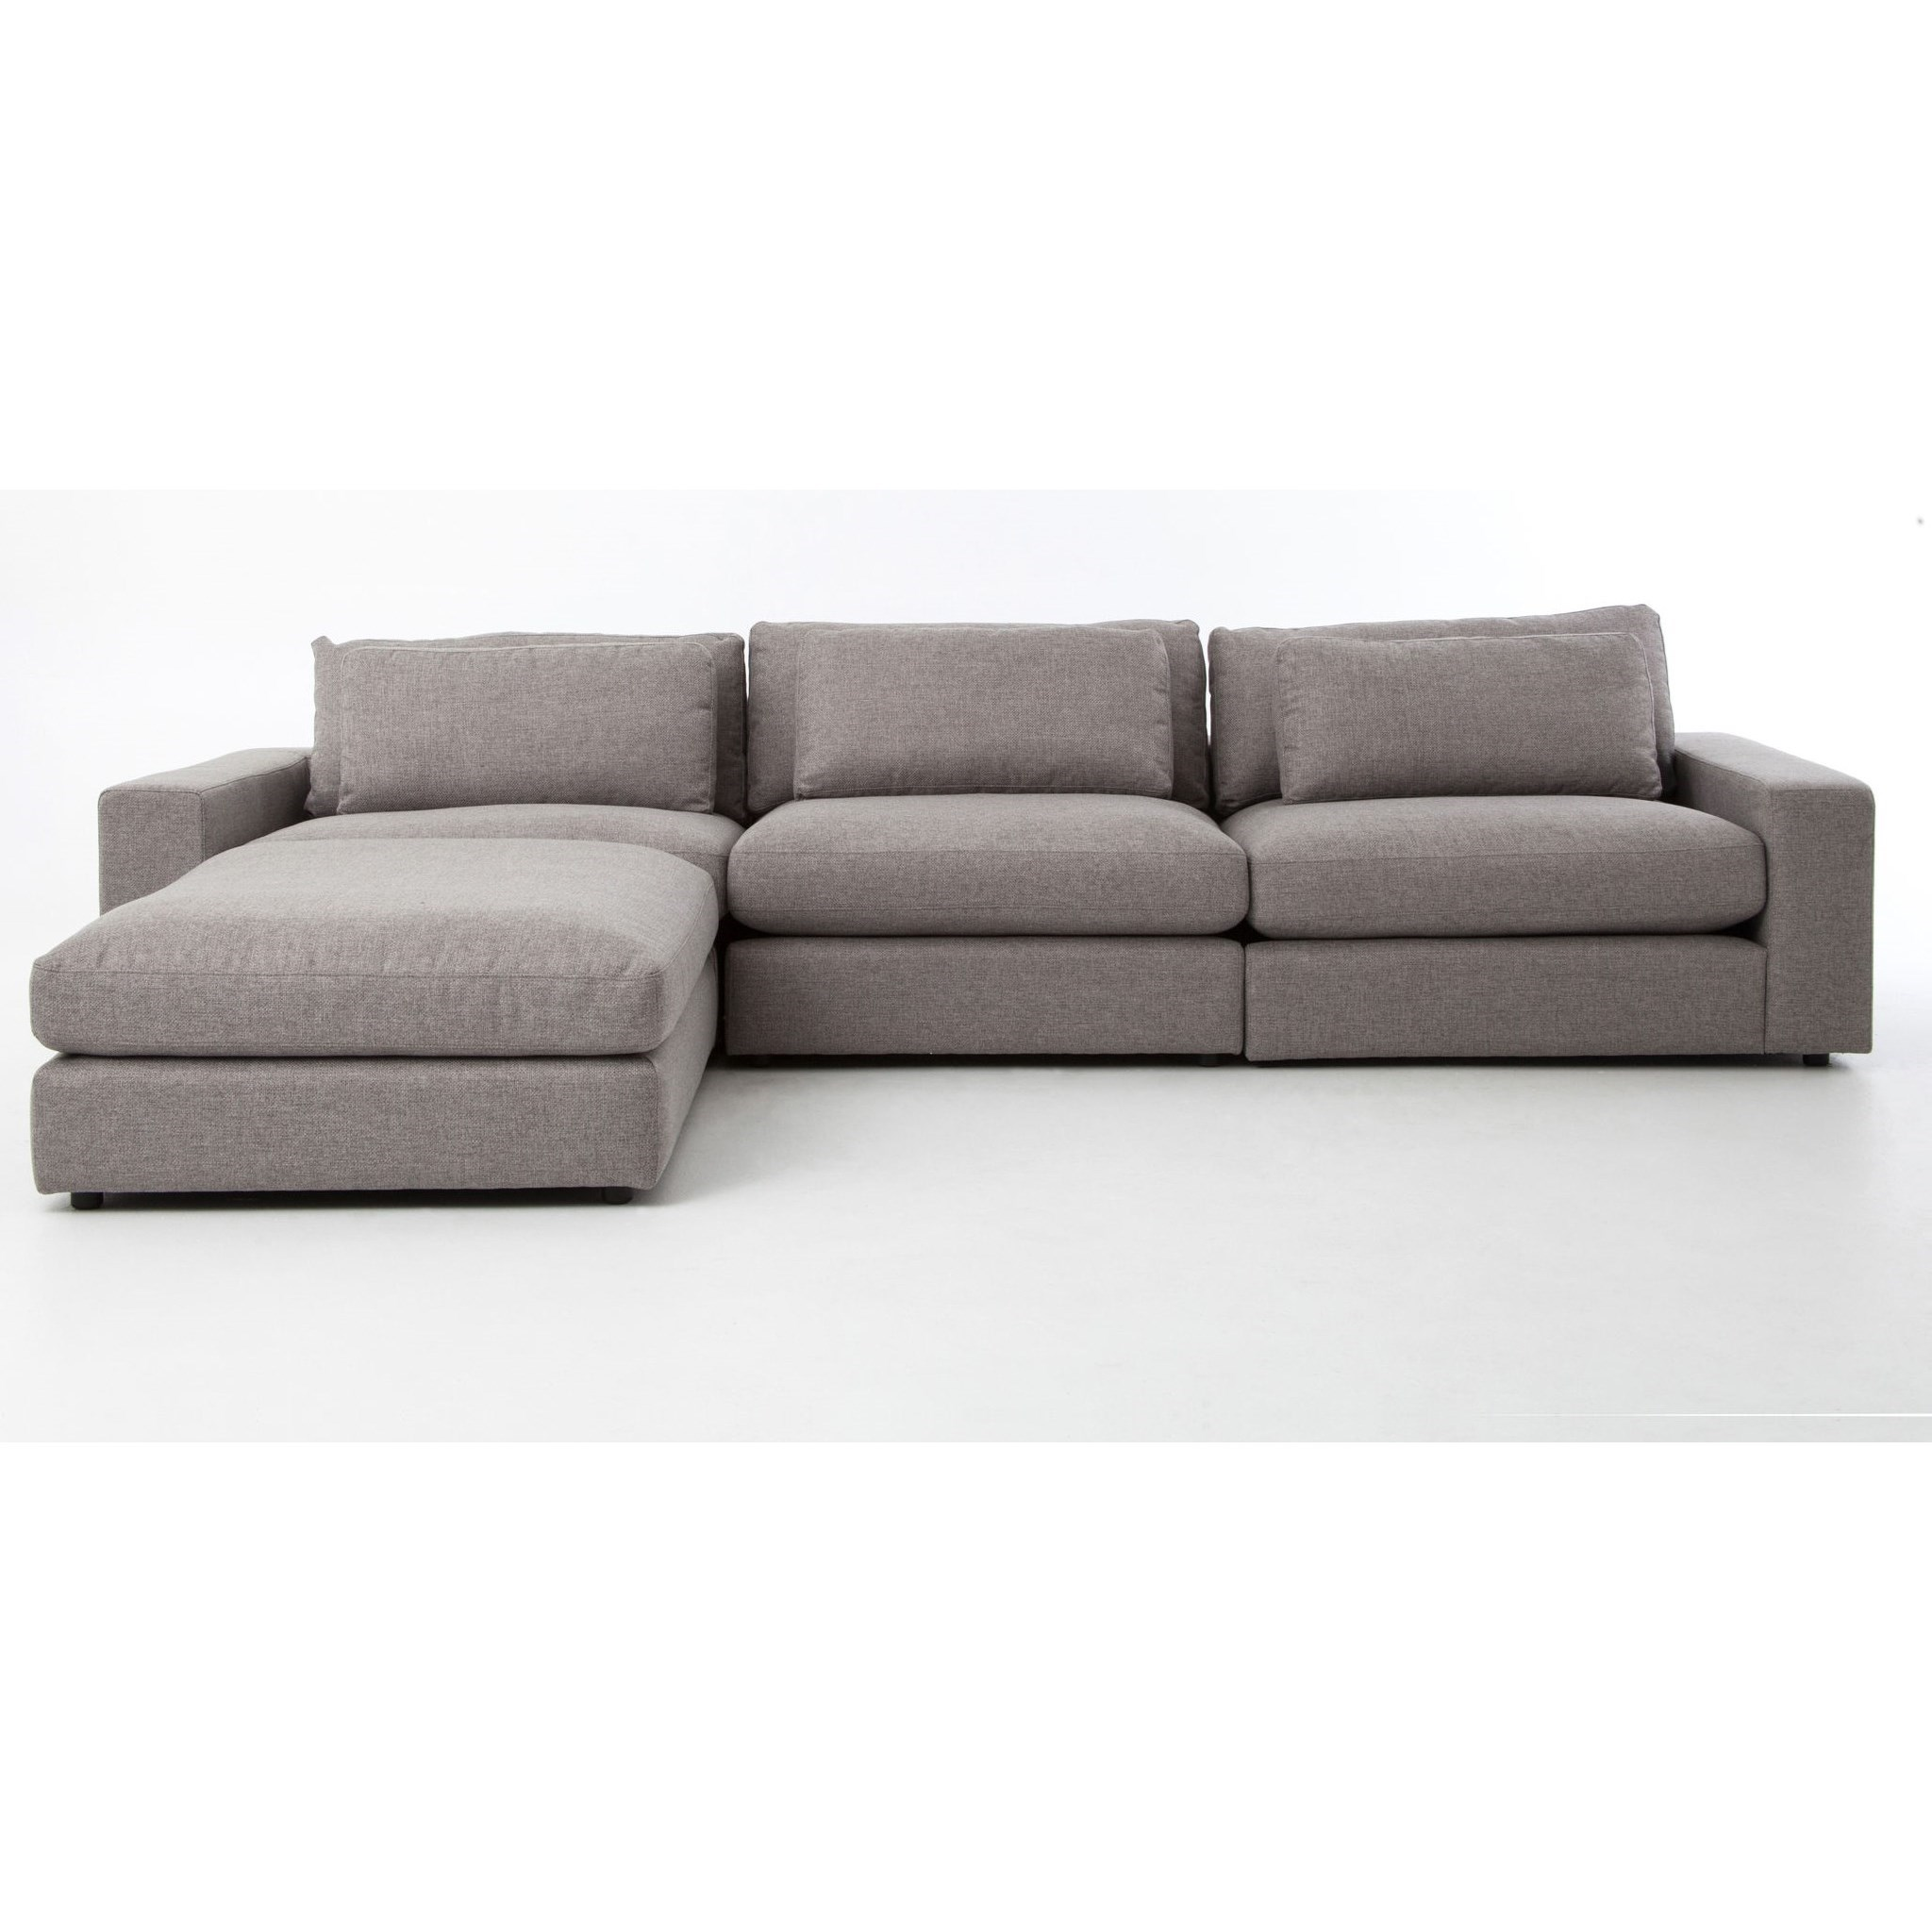 Bloor Sofa with Ottoman in Chess Pewter Fabric by Four Hands